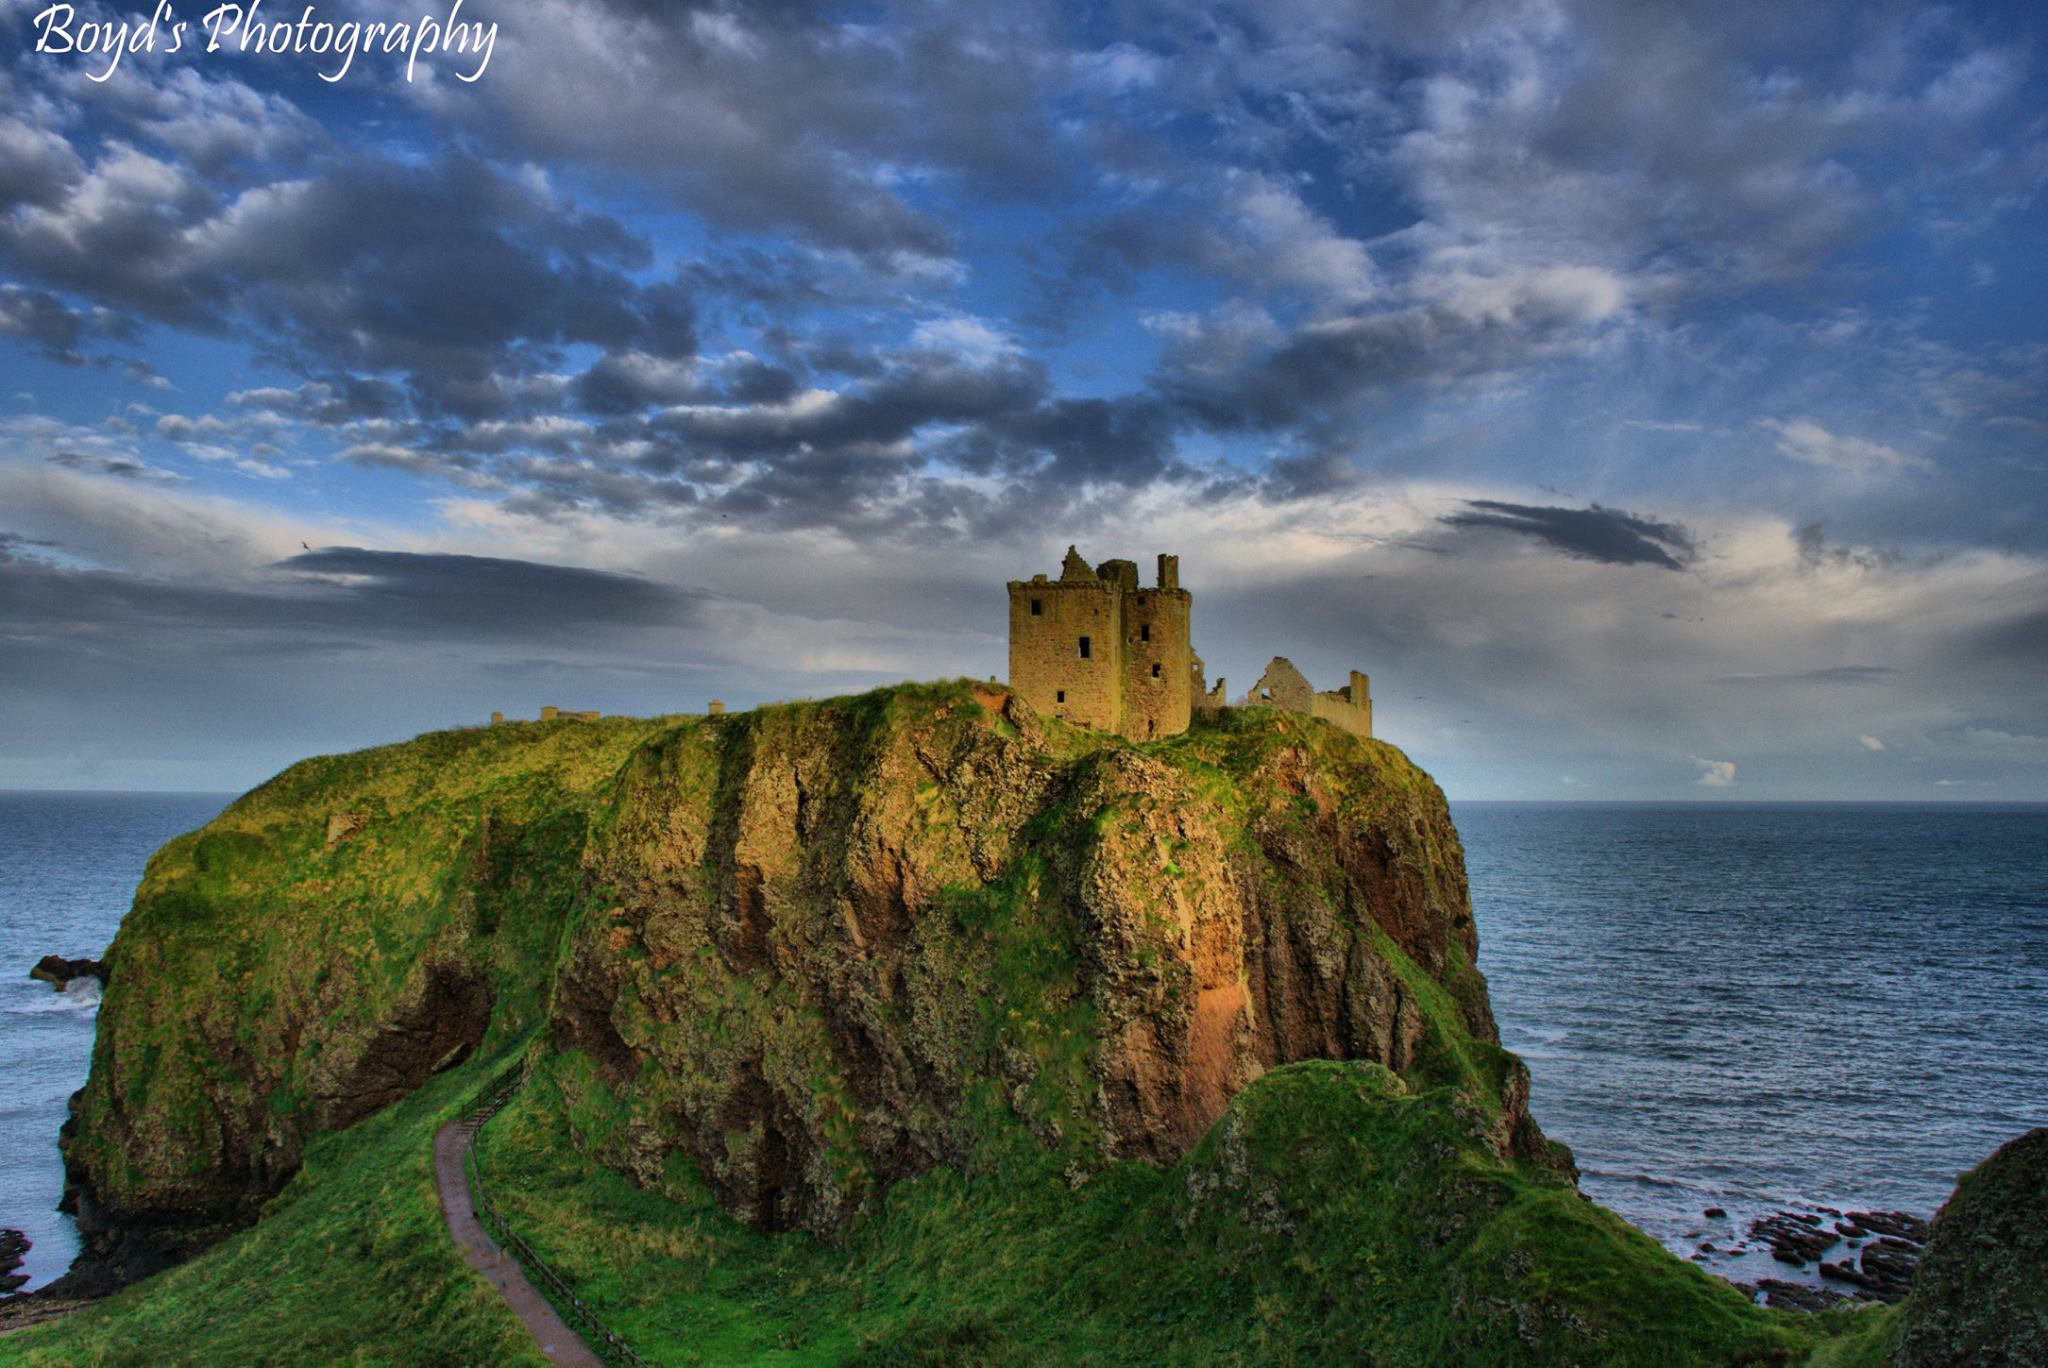 High fortress Pollee Hamilton sent in this stunning image of Dunnottar Castle in Aberdeenshire